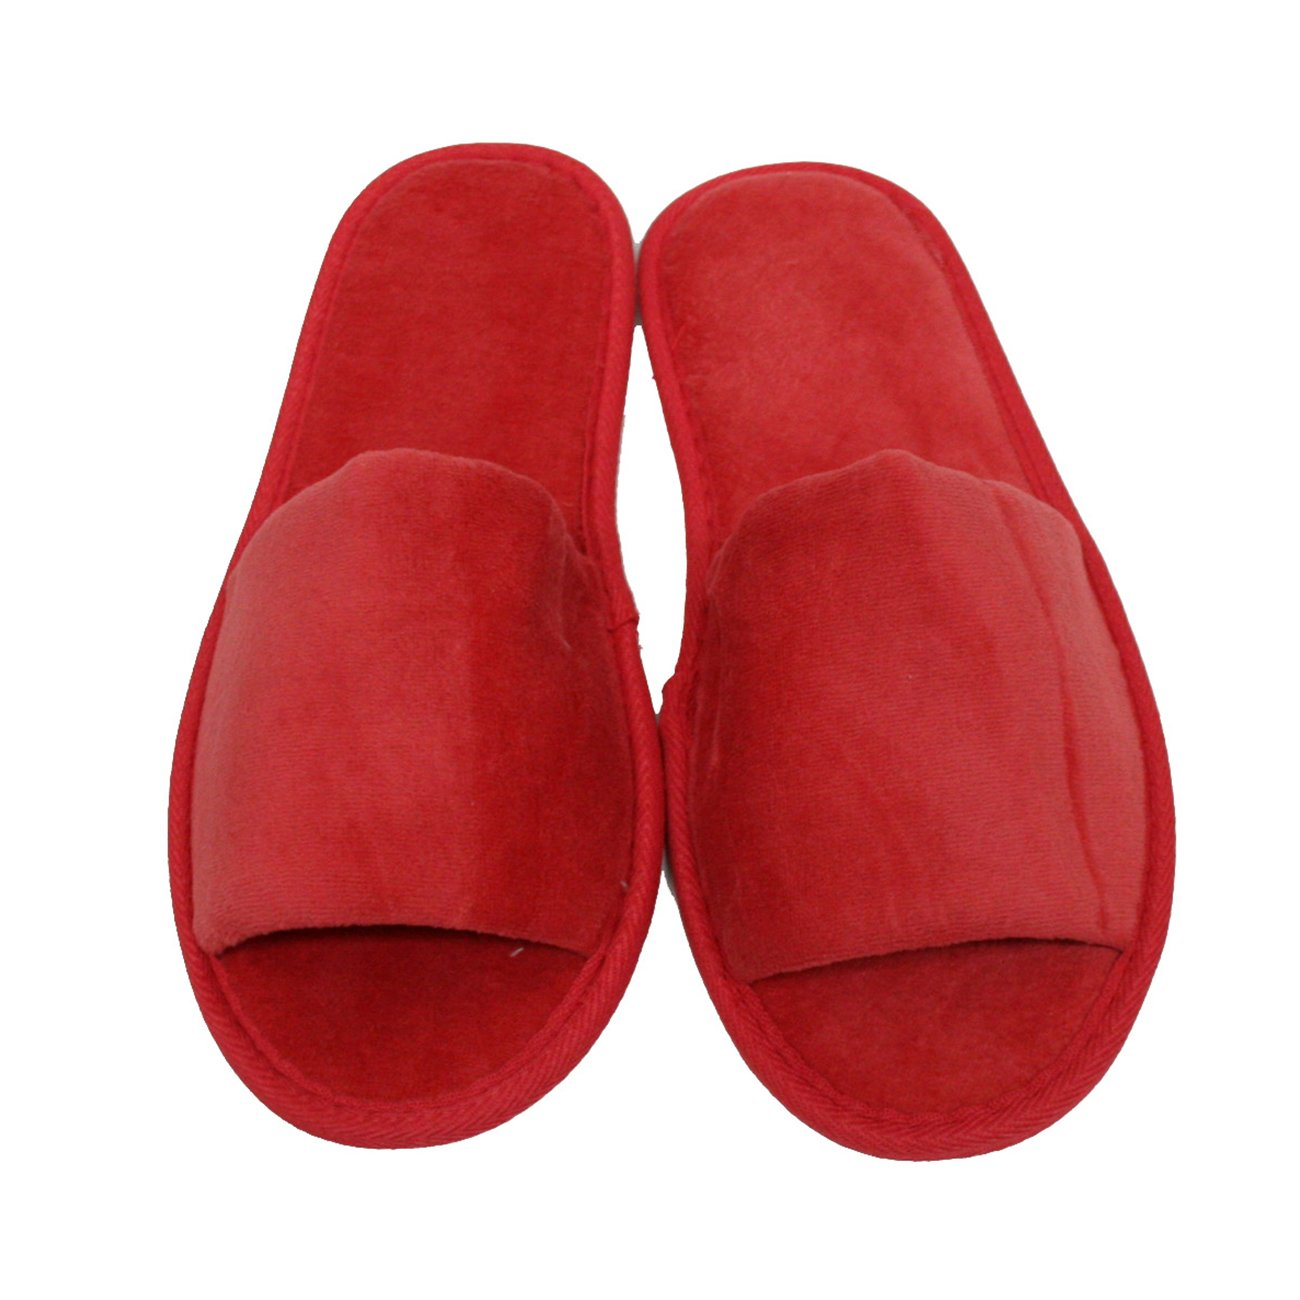 Terry Velour Open Toe Slippers Cloth Spa Hotel Unisex Slippers 100 Pcs Wholesale(One Size 11'', Red) by TowelRobes (Image #1)